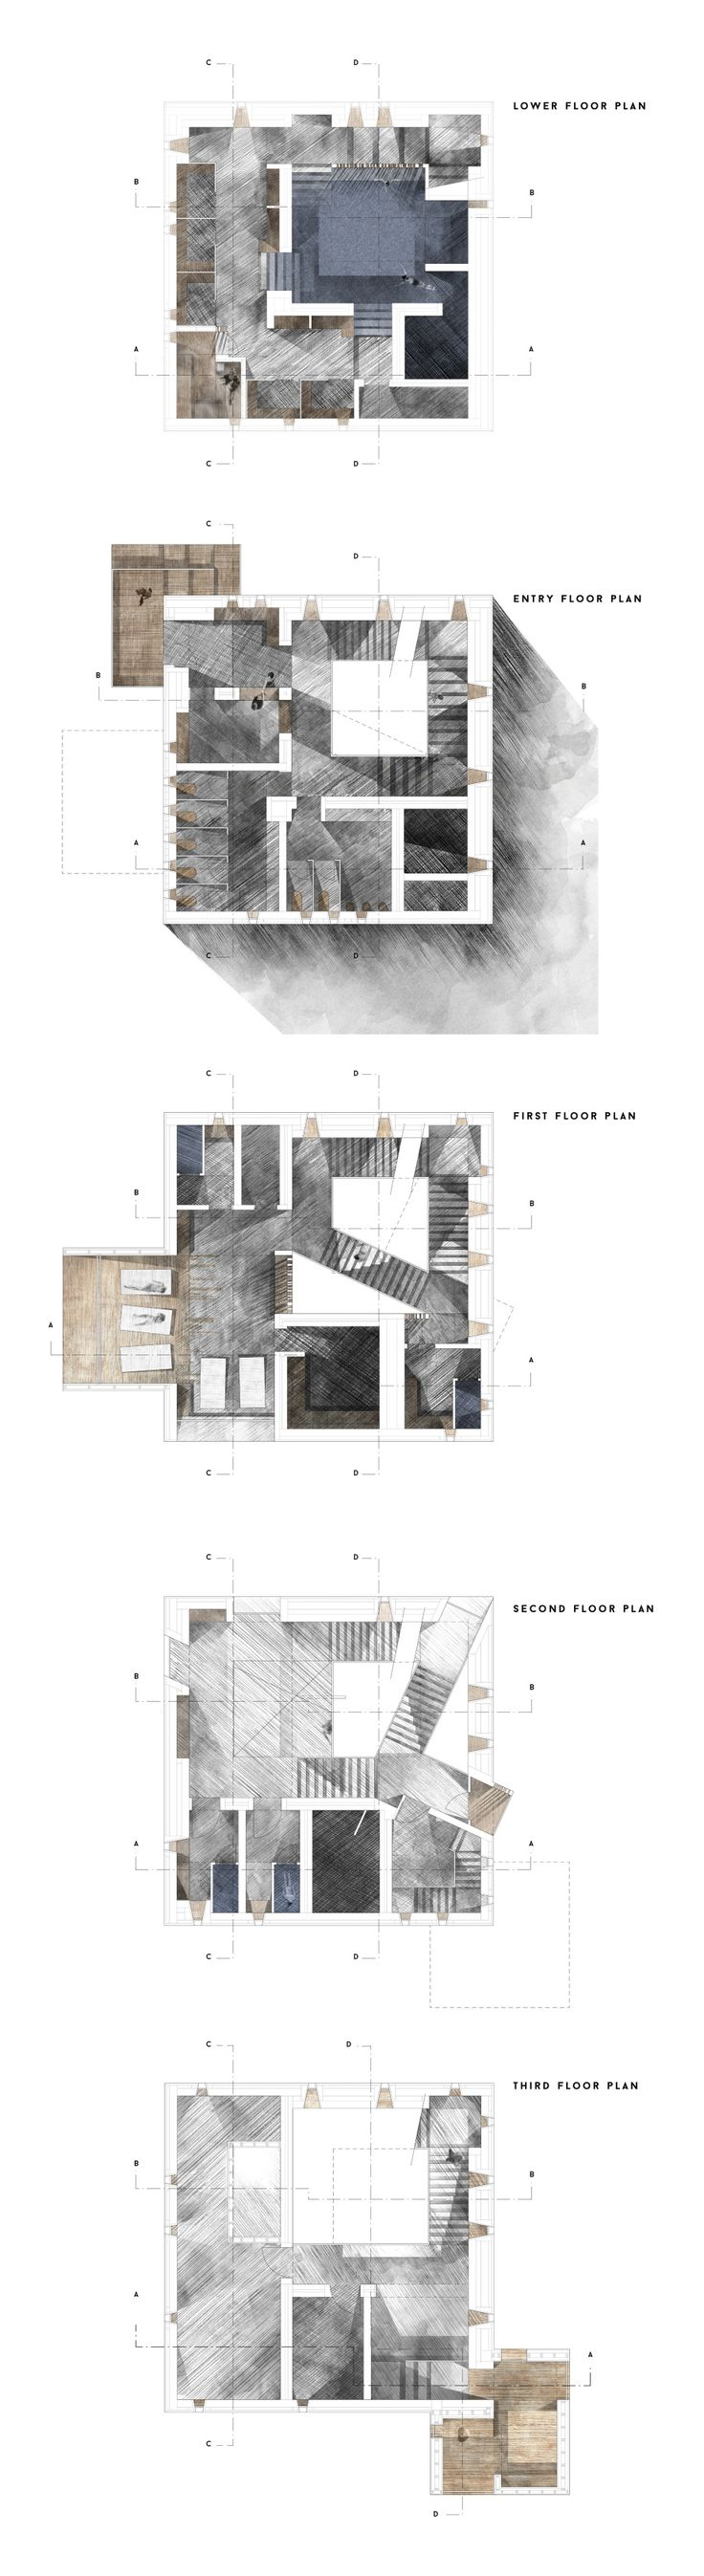 floor plans // Alex Kindlen Final Studio Project